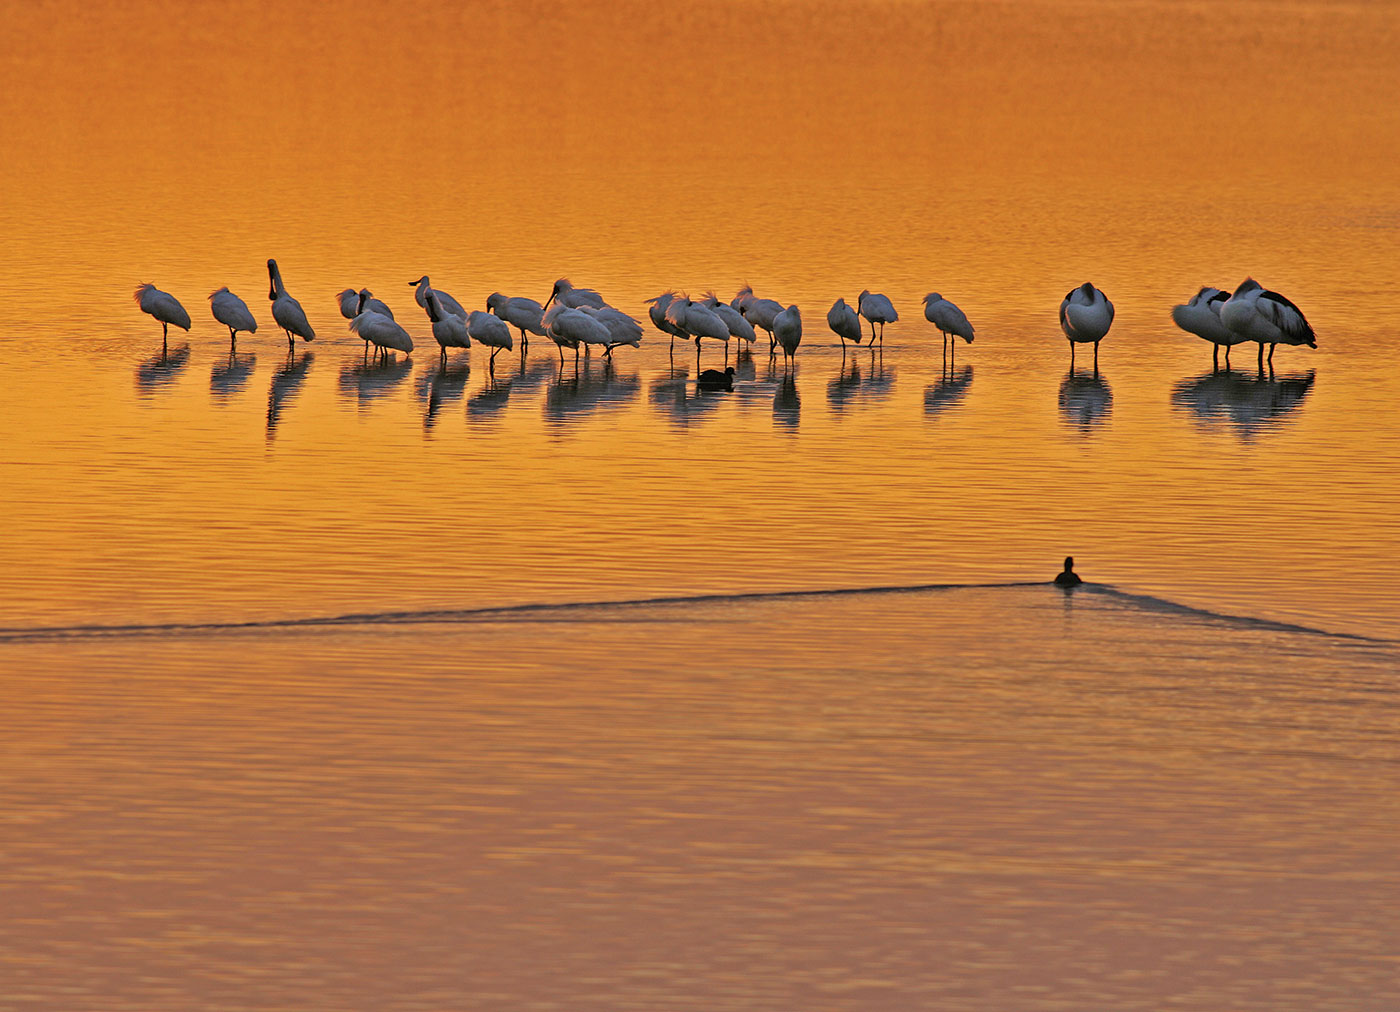 A group of birds stand in shallow water.